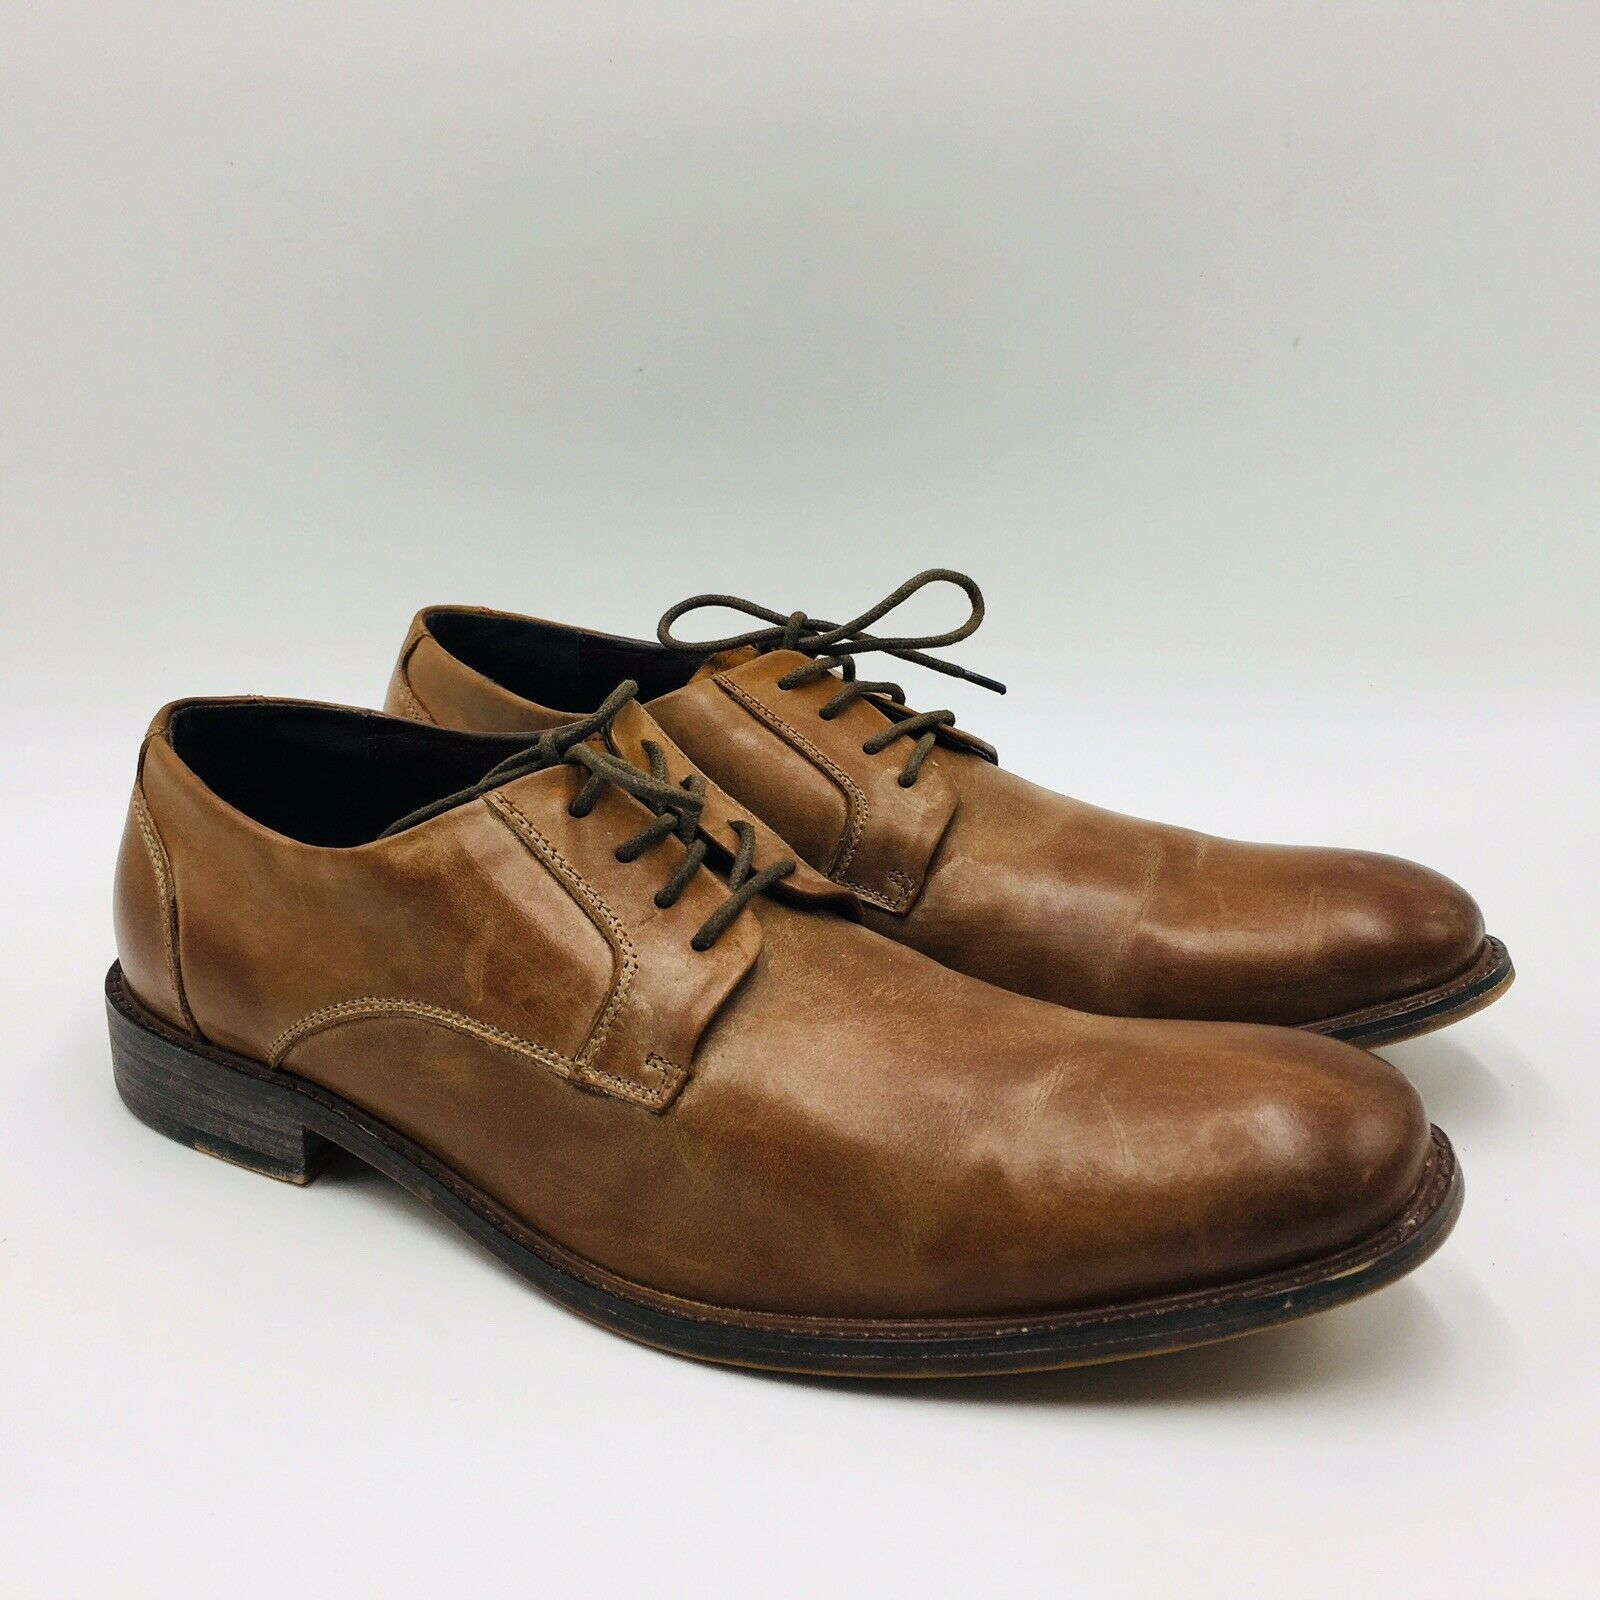 Kenneth Cole Reaction Men's Found It Plain Toe Leather Oxford Size 10.5M Brown